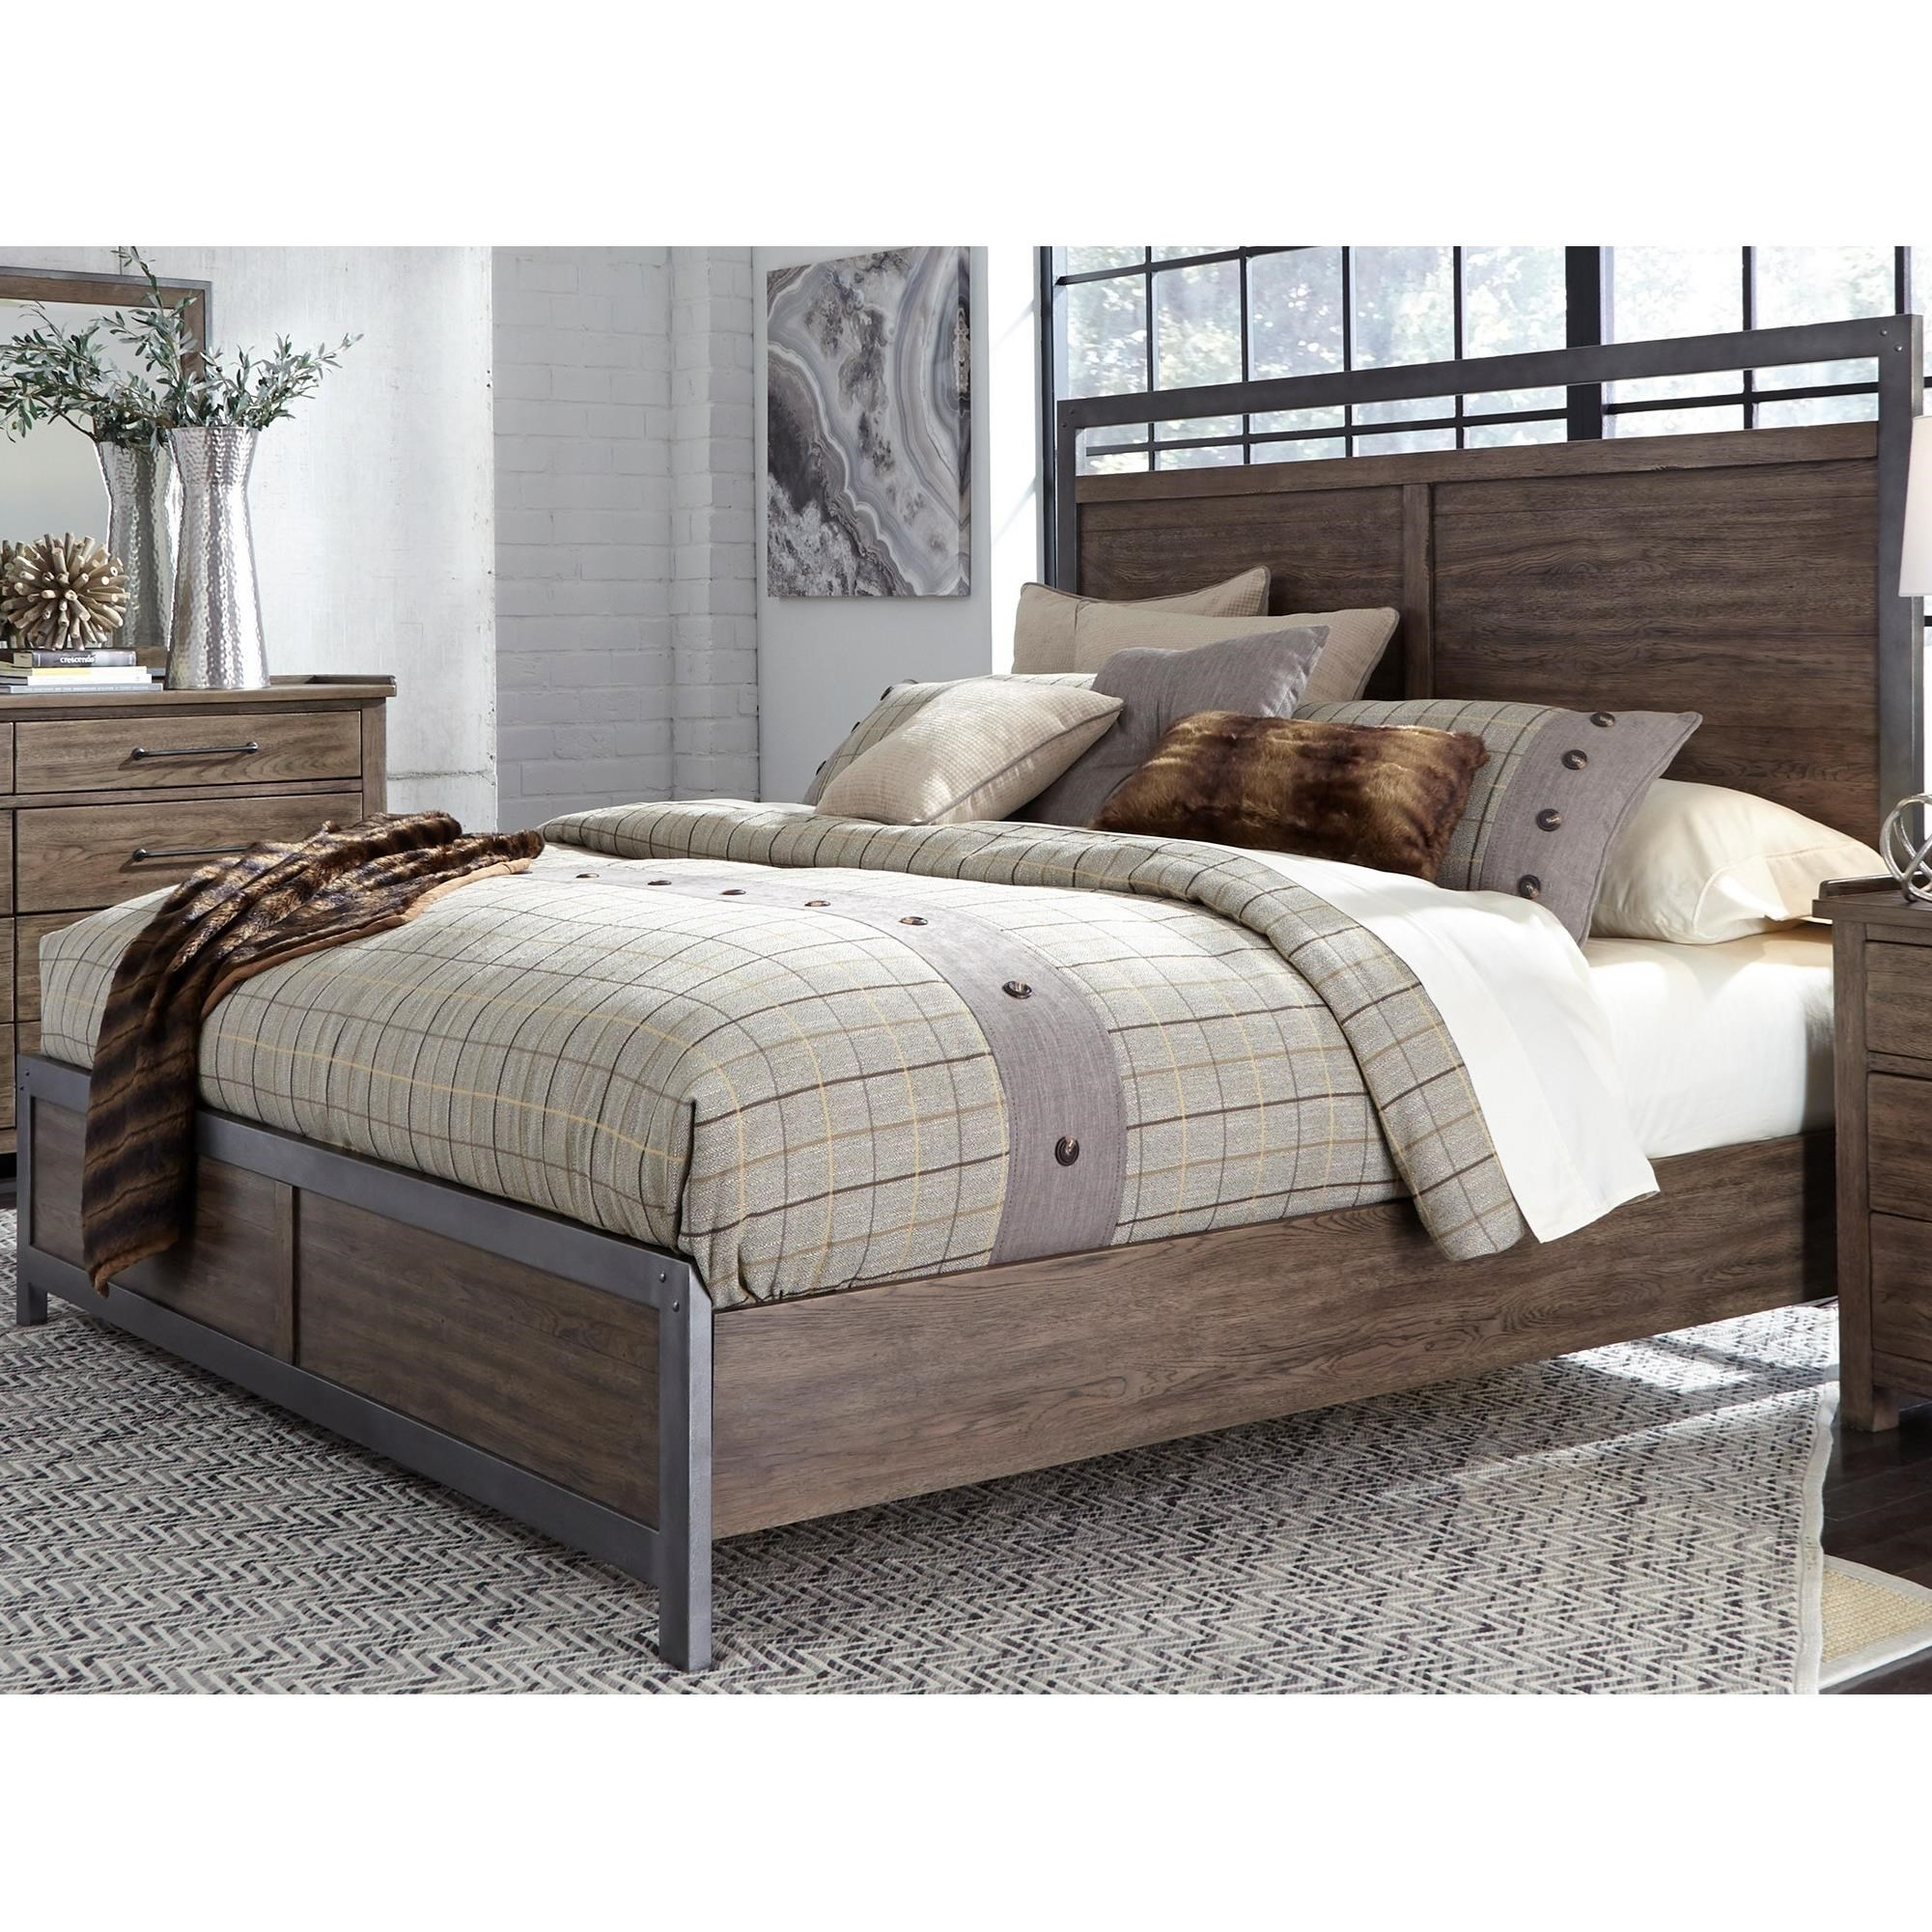 Sonoma Road Queen Panel Bed  by Liberty Furniture at Northeast Factory Direct